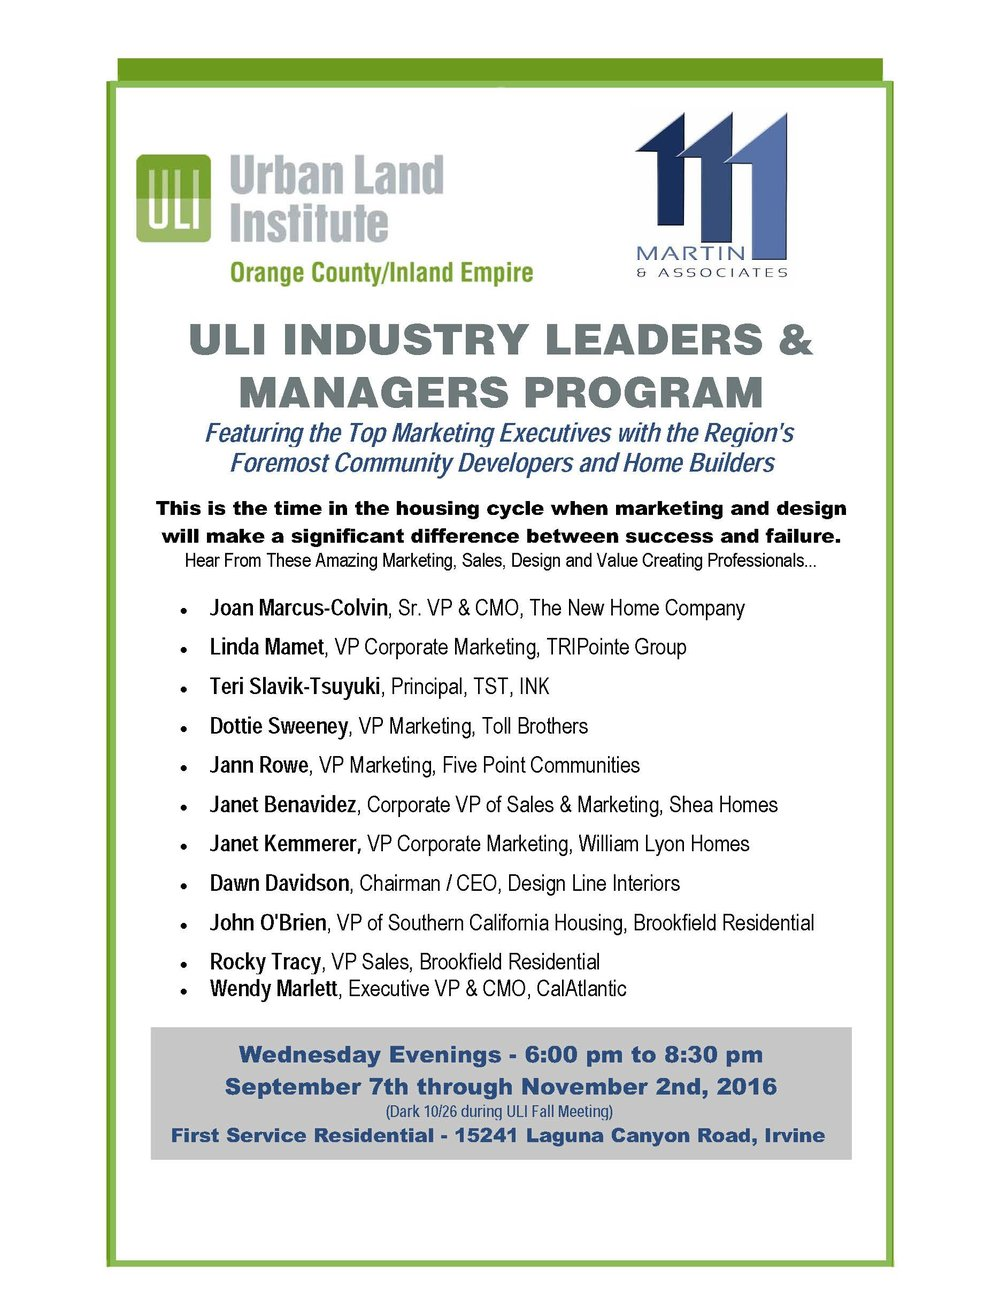 ULI INDUSTRY PROGRAM SEPT2016 p1.JPG